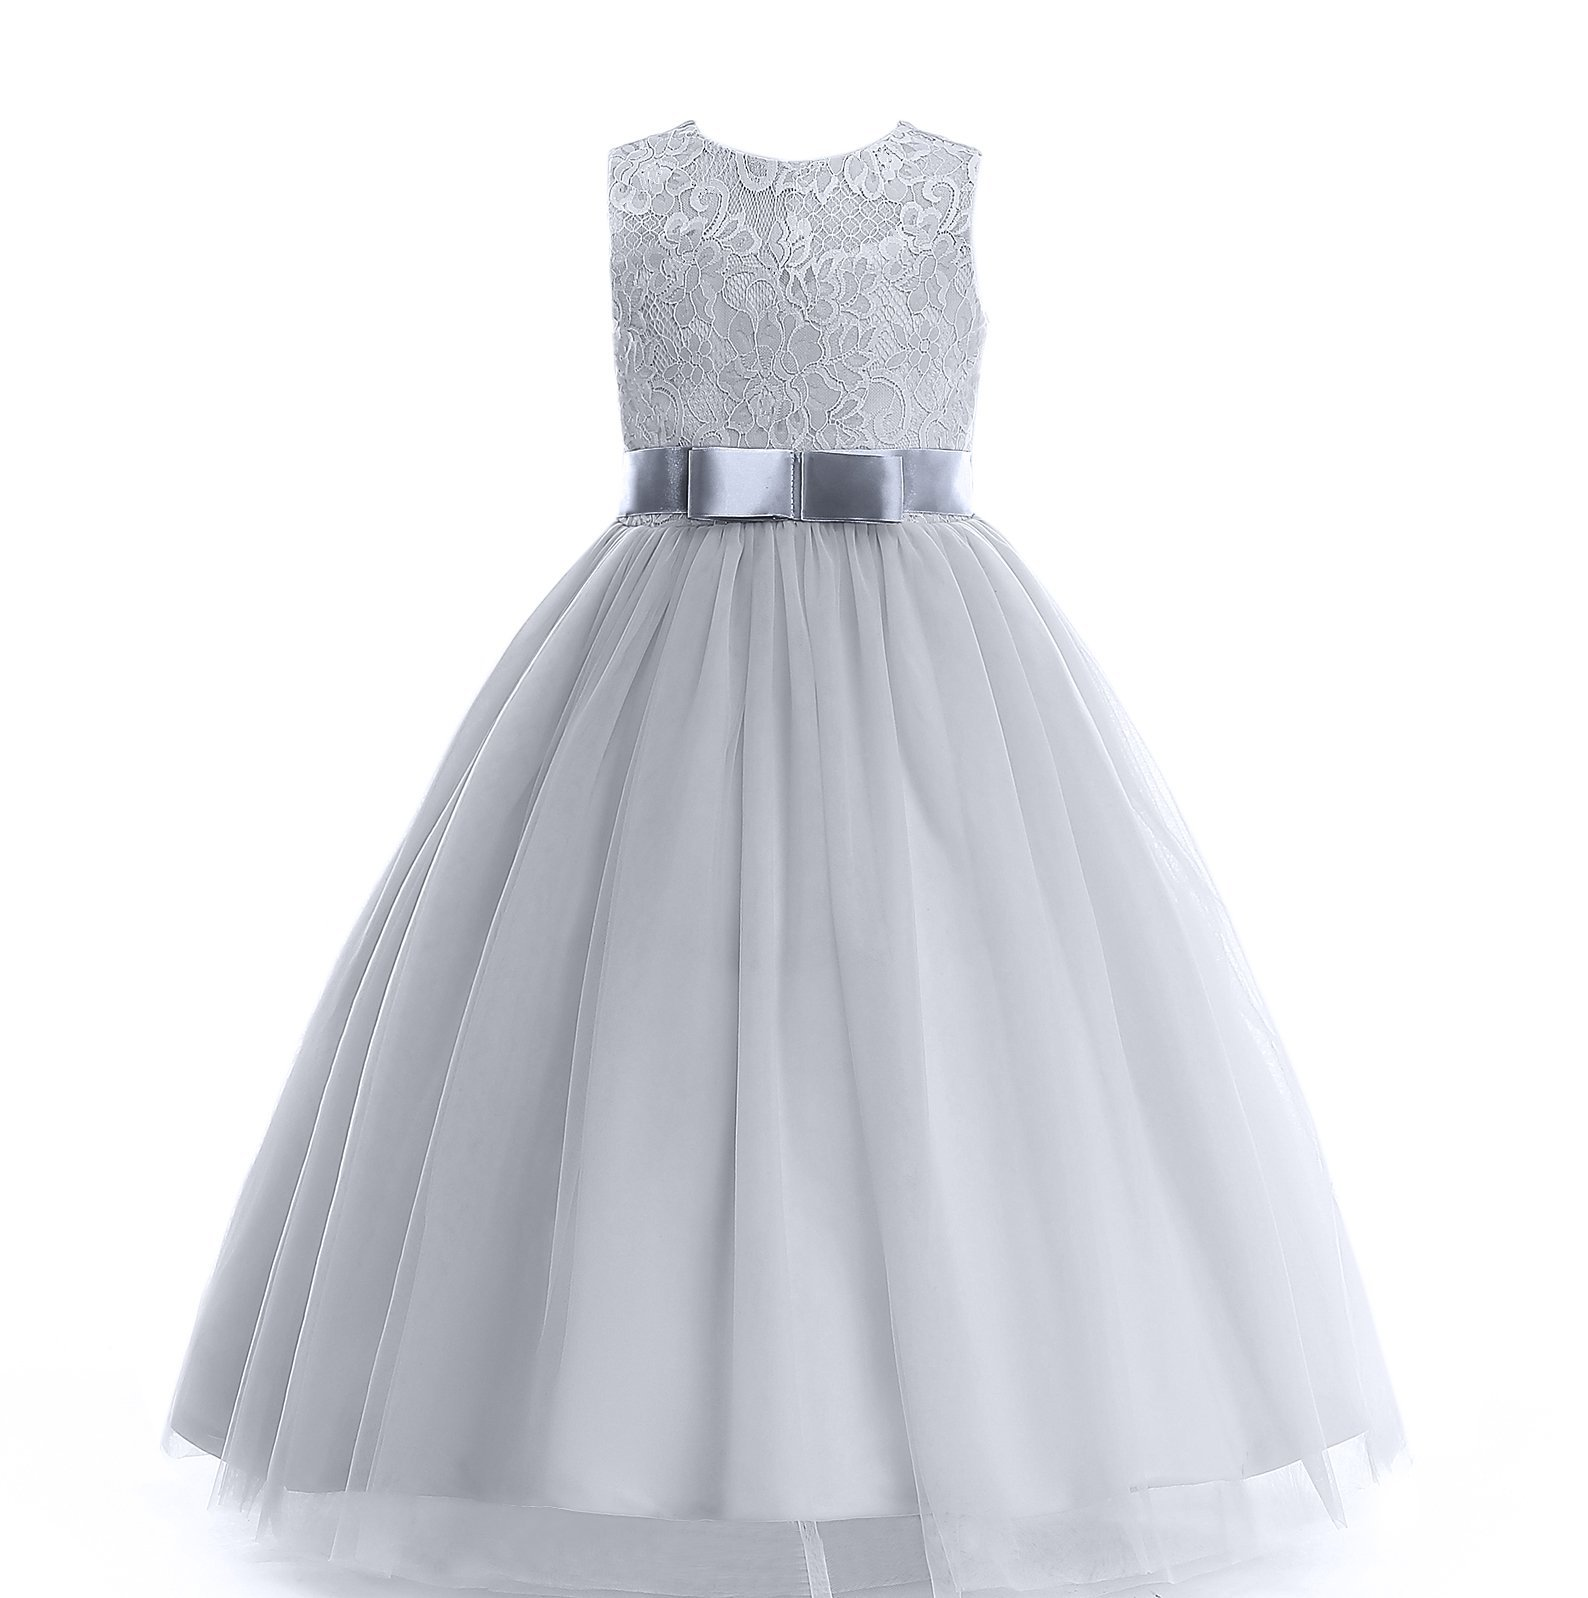 Glamulice Girl Lace Dress Long Party Wedding Dresses Mesh and Bow Age 3-16Y (9-10T, Gray)